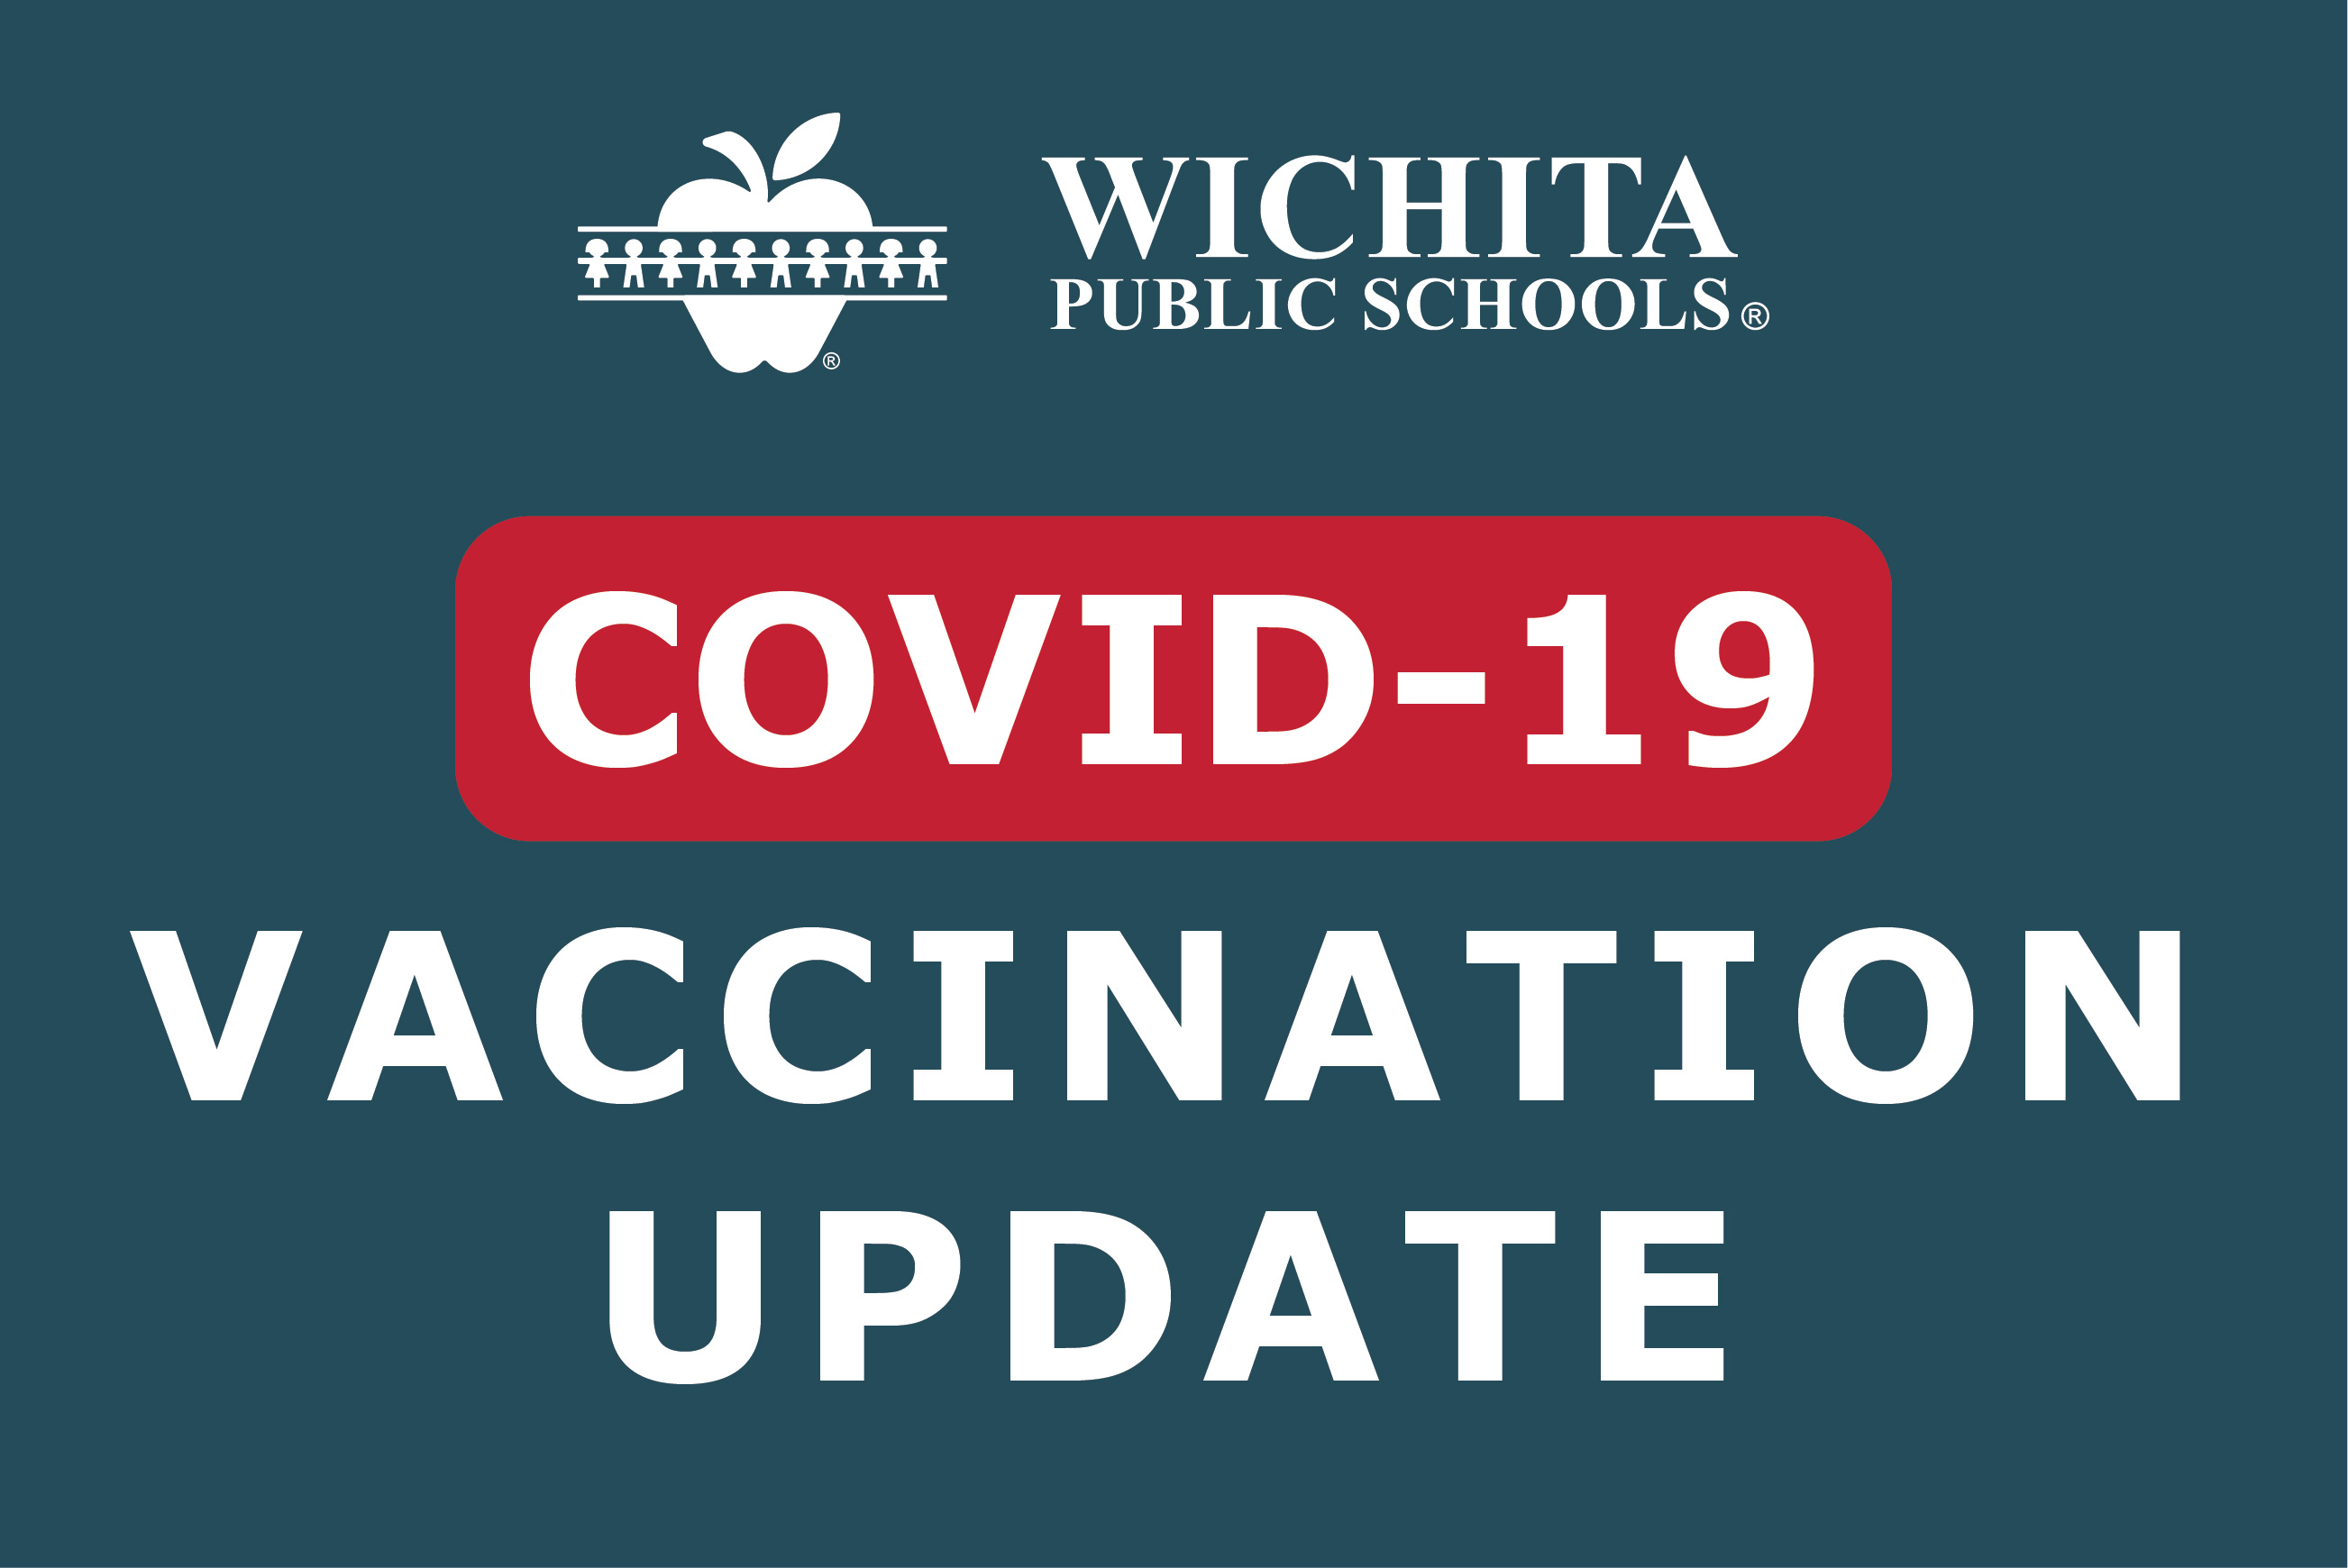 All WPS staff eligible to receive COVID-19 vaccine – updated 3-2-21